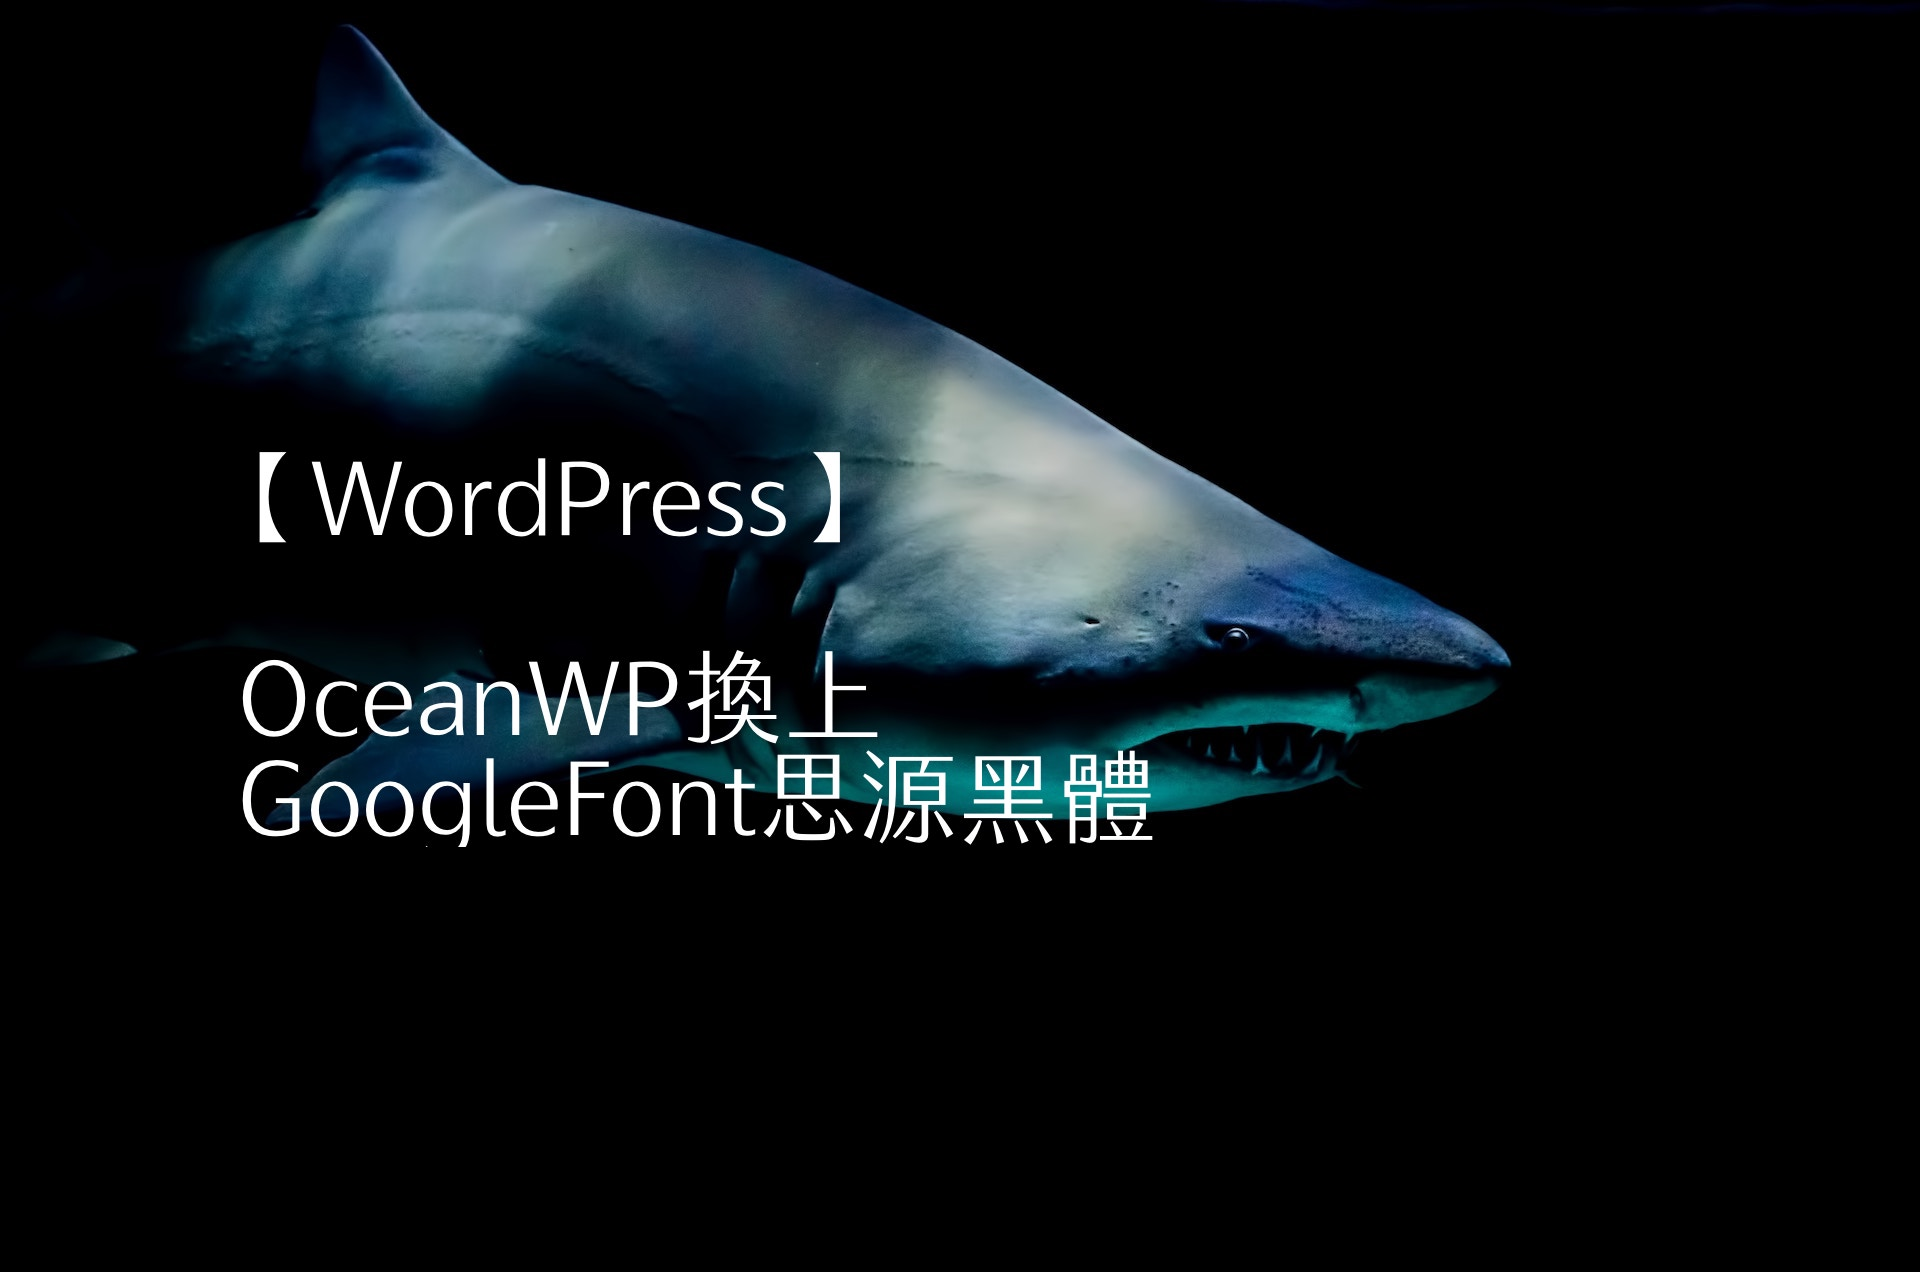 【WordPress】OceanWP換上GoogleFont思源黑體 2